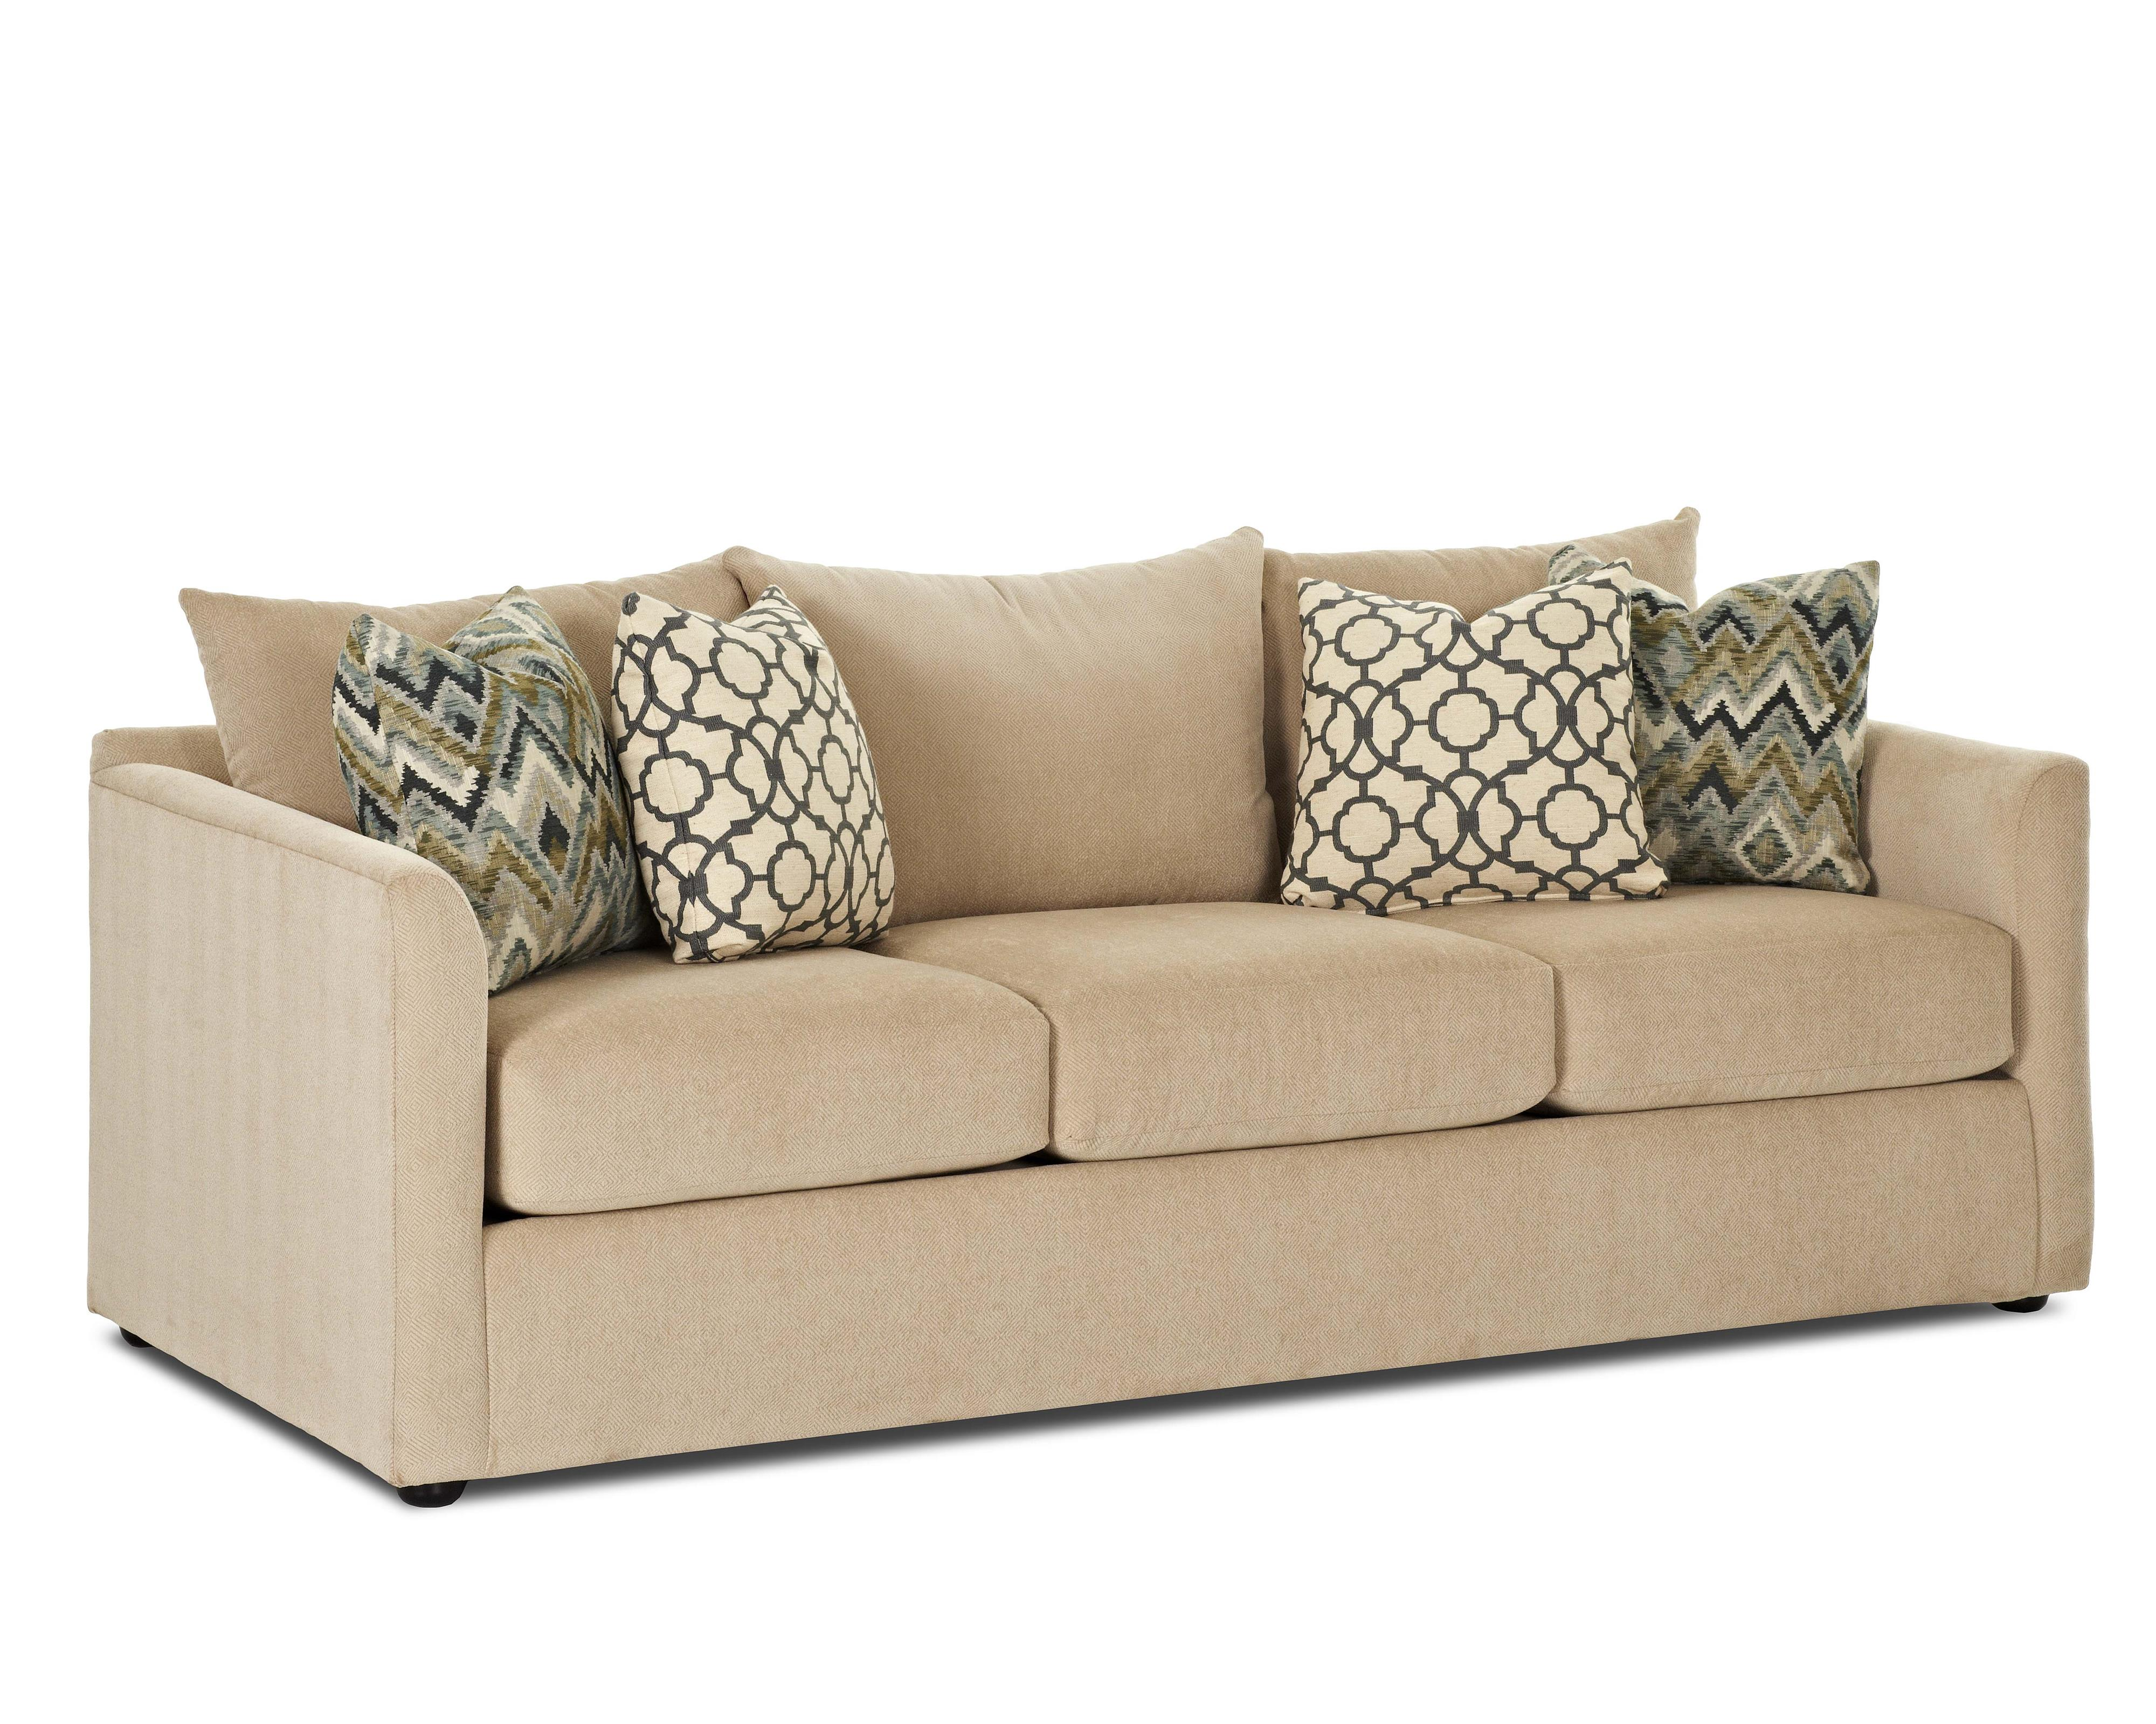 memory foam mattress for sofa sleeper modern with chaise lounge transitional w enso by